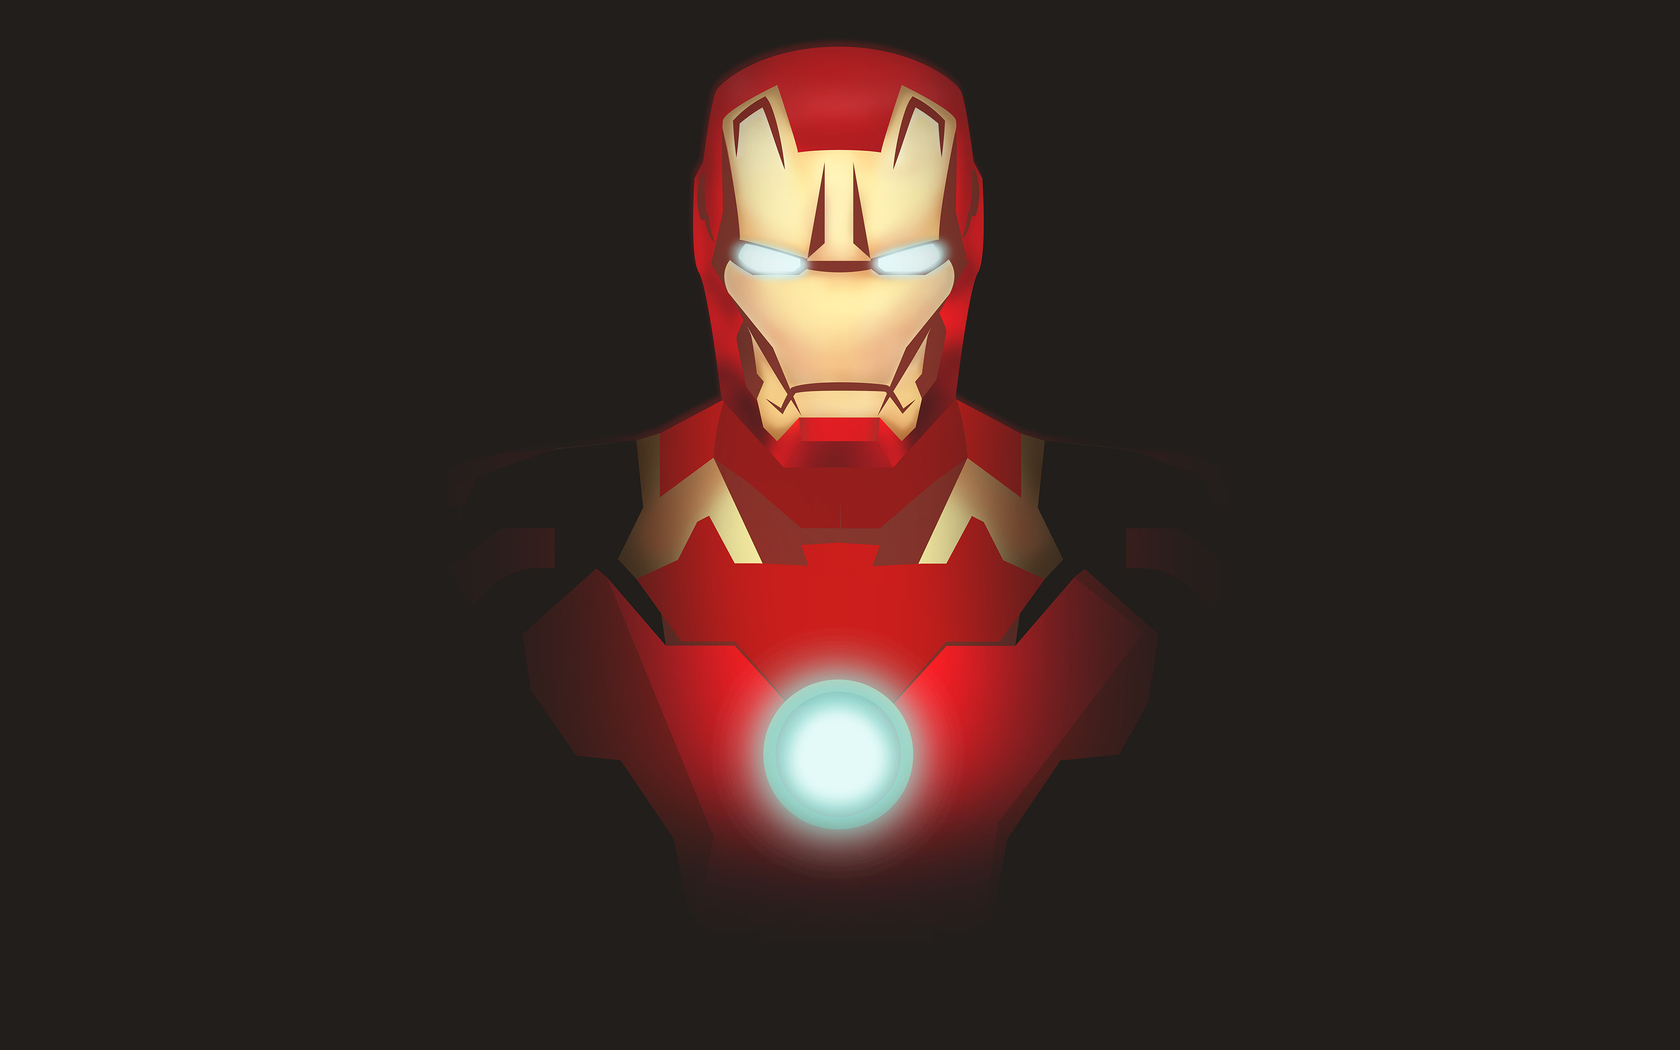 iron-man-illustration-6p.jpg